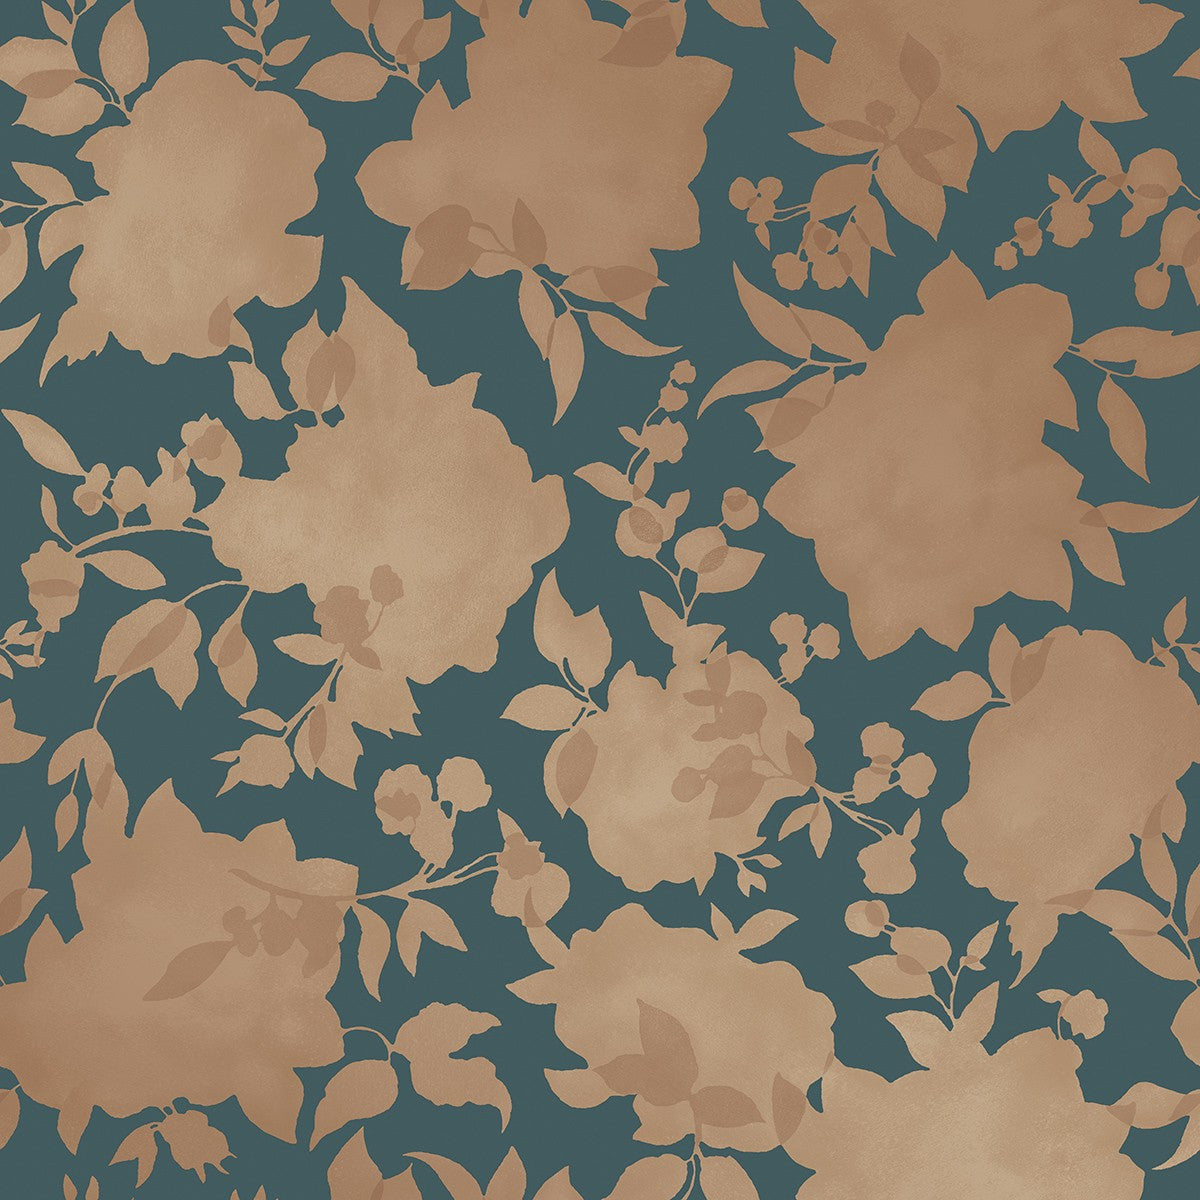 Silhouette self adhesive wallpaper in peacock blue gold for Gold self adhesive wallpaper